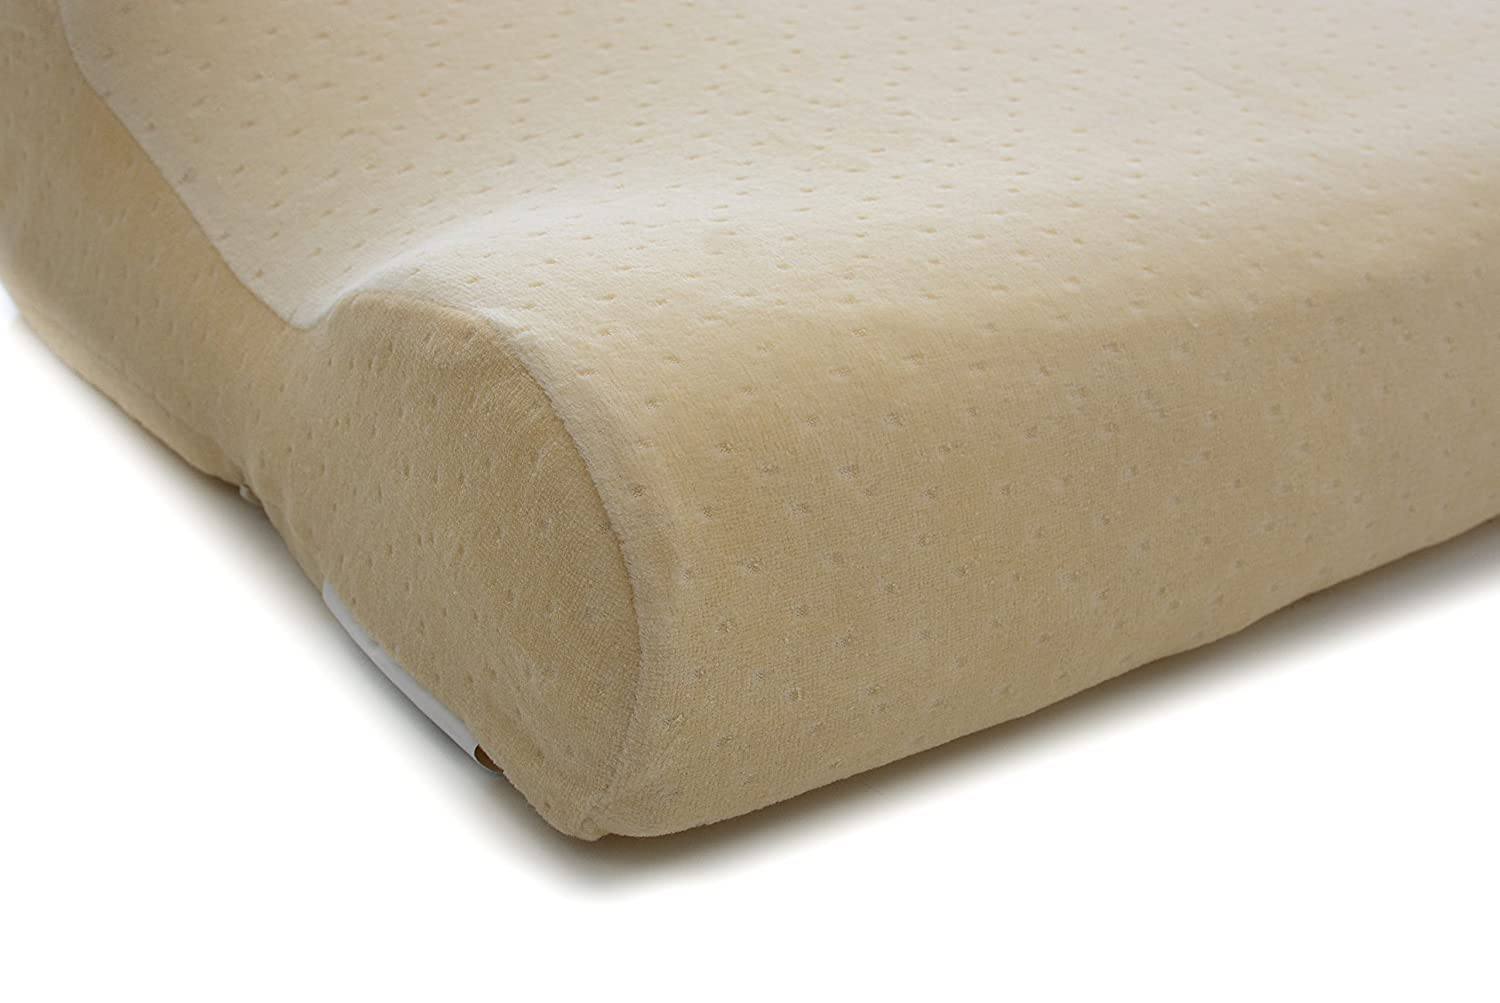 wrinkle prevention memory foam pillow ebay